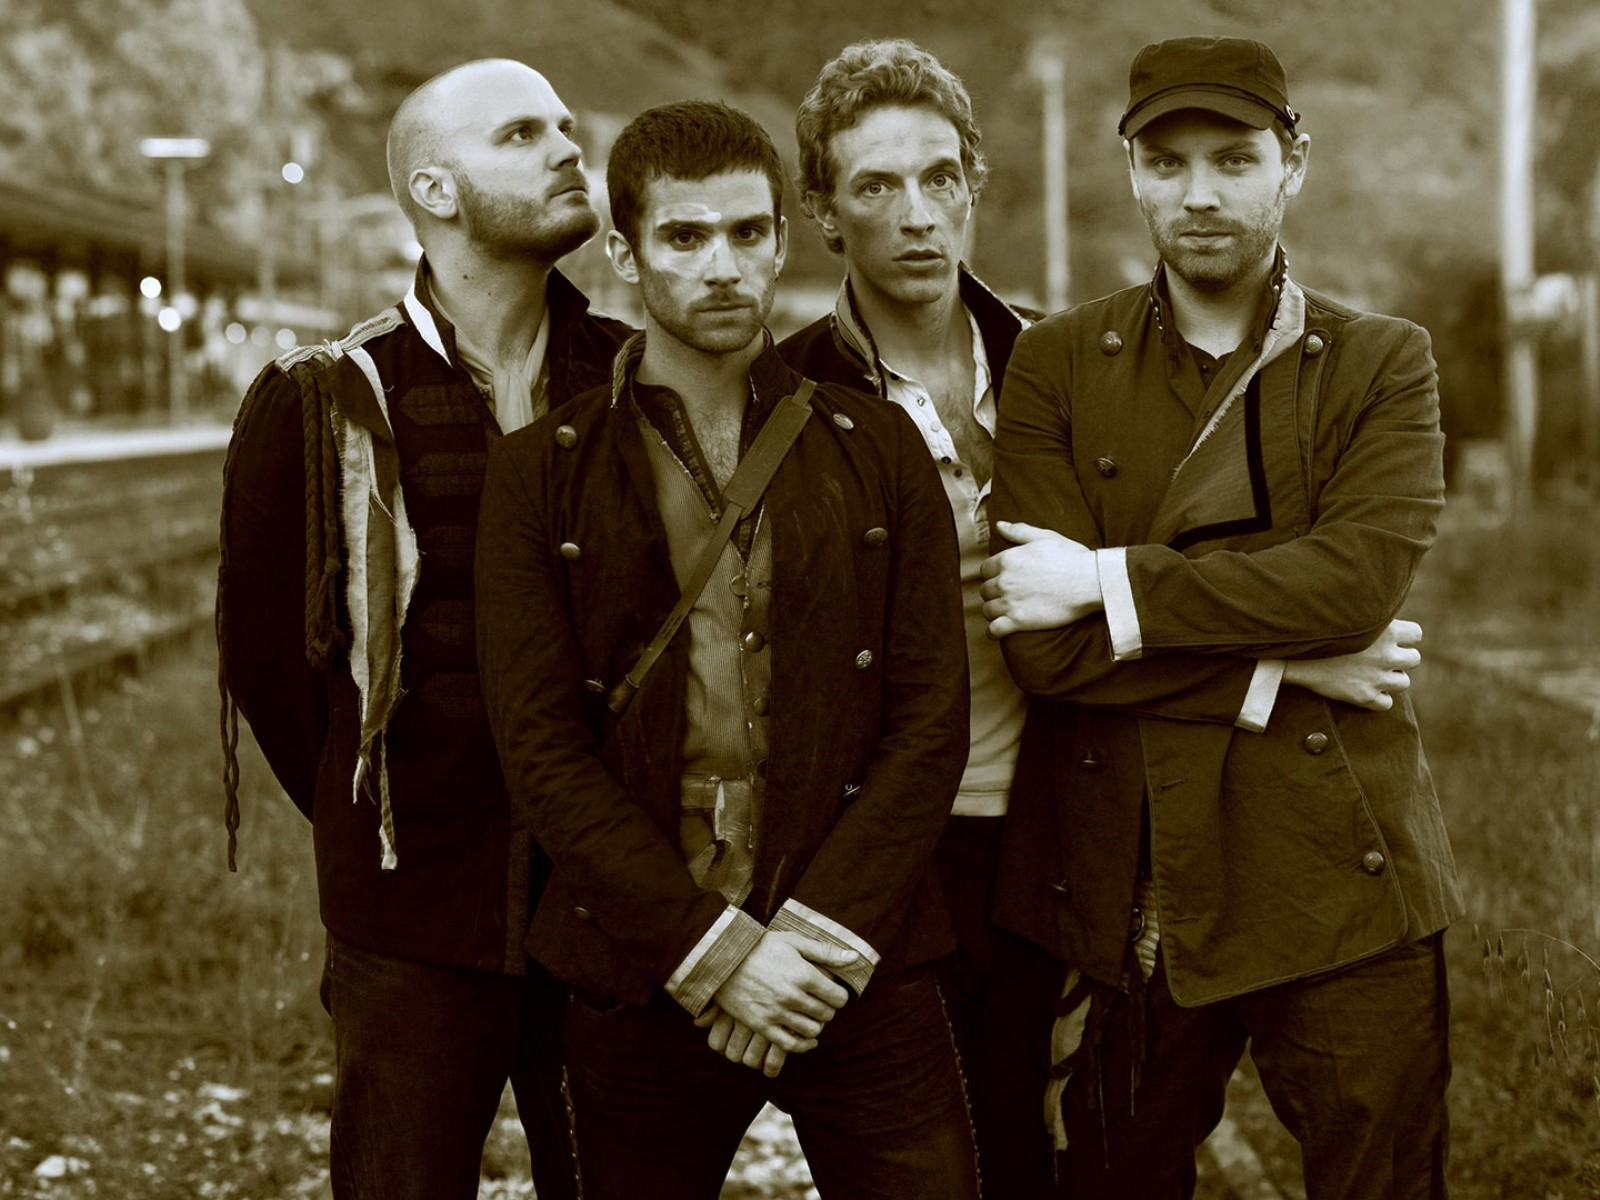 Coldplay Band Sepia Wallpaper for Desktop 1600x1200